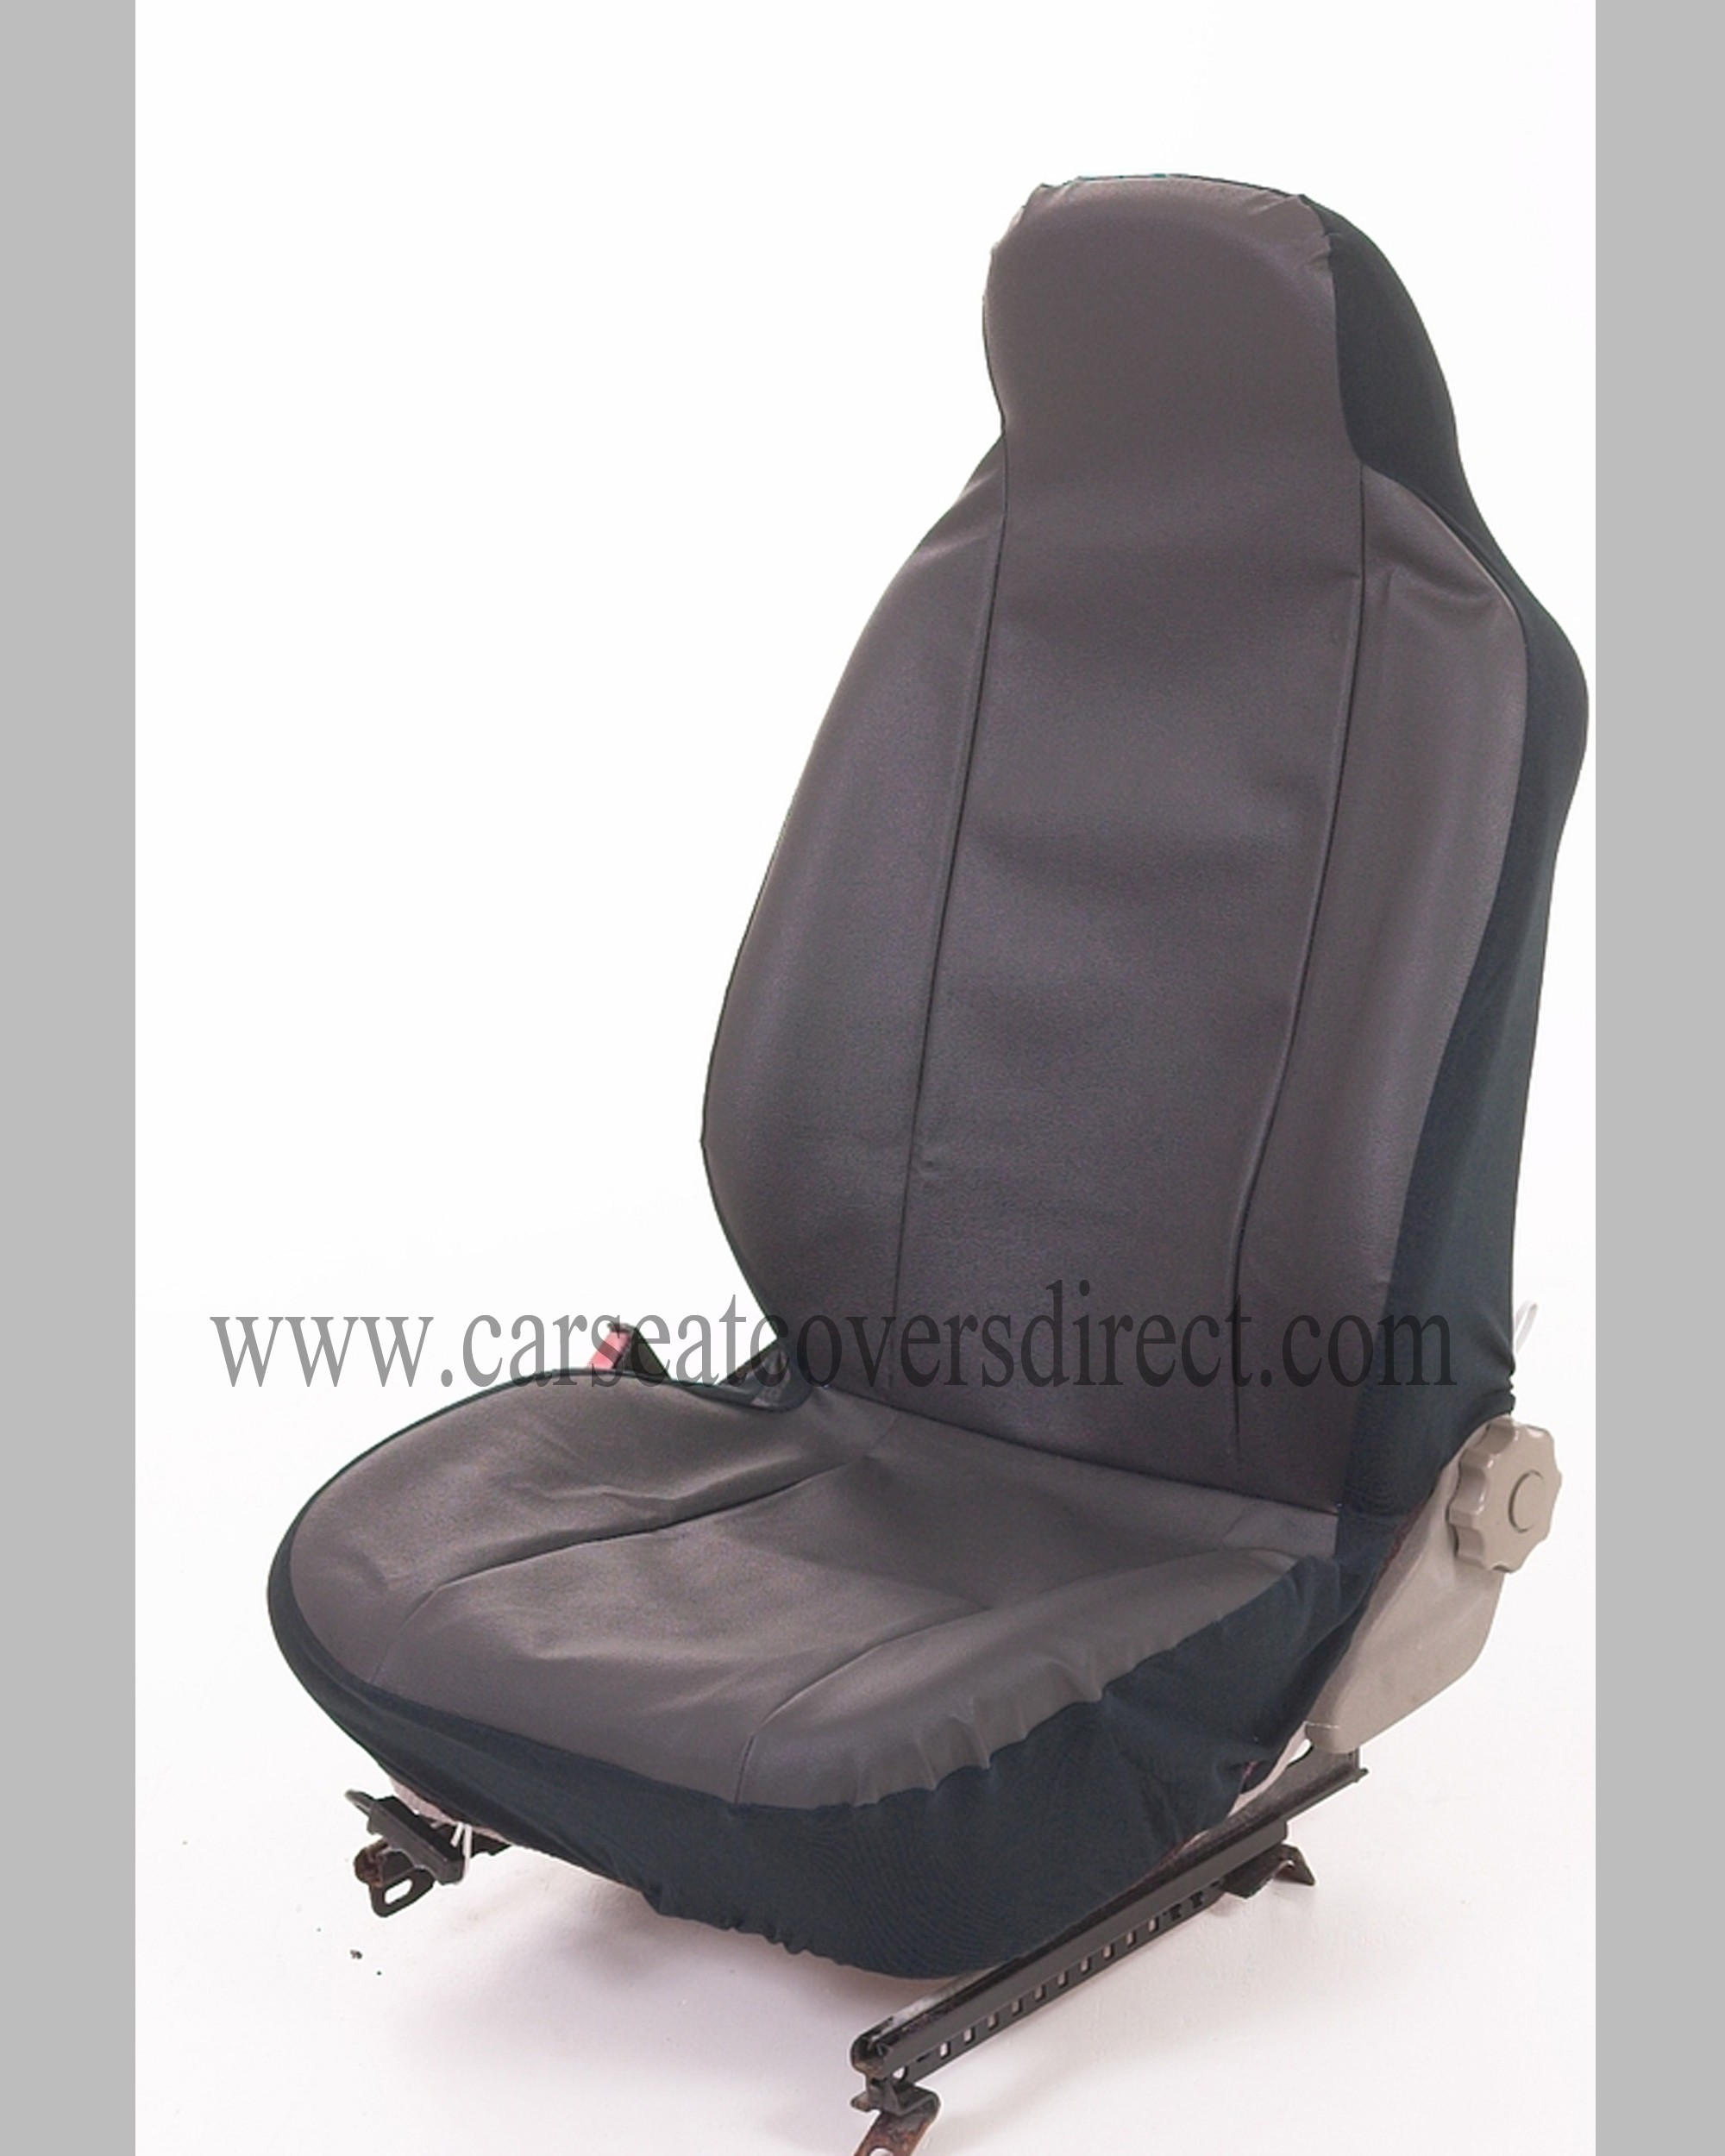 Toyota Avensis - Single seat protector leatherette